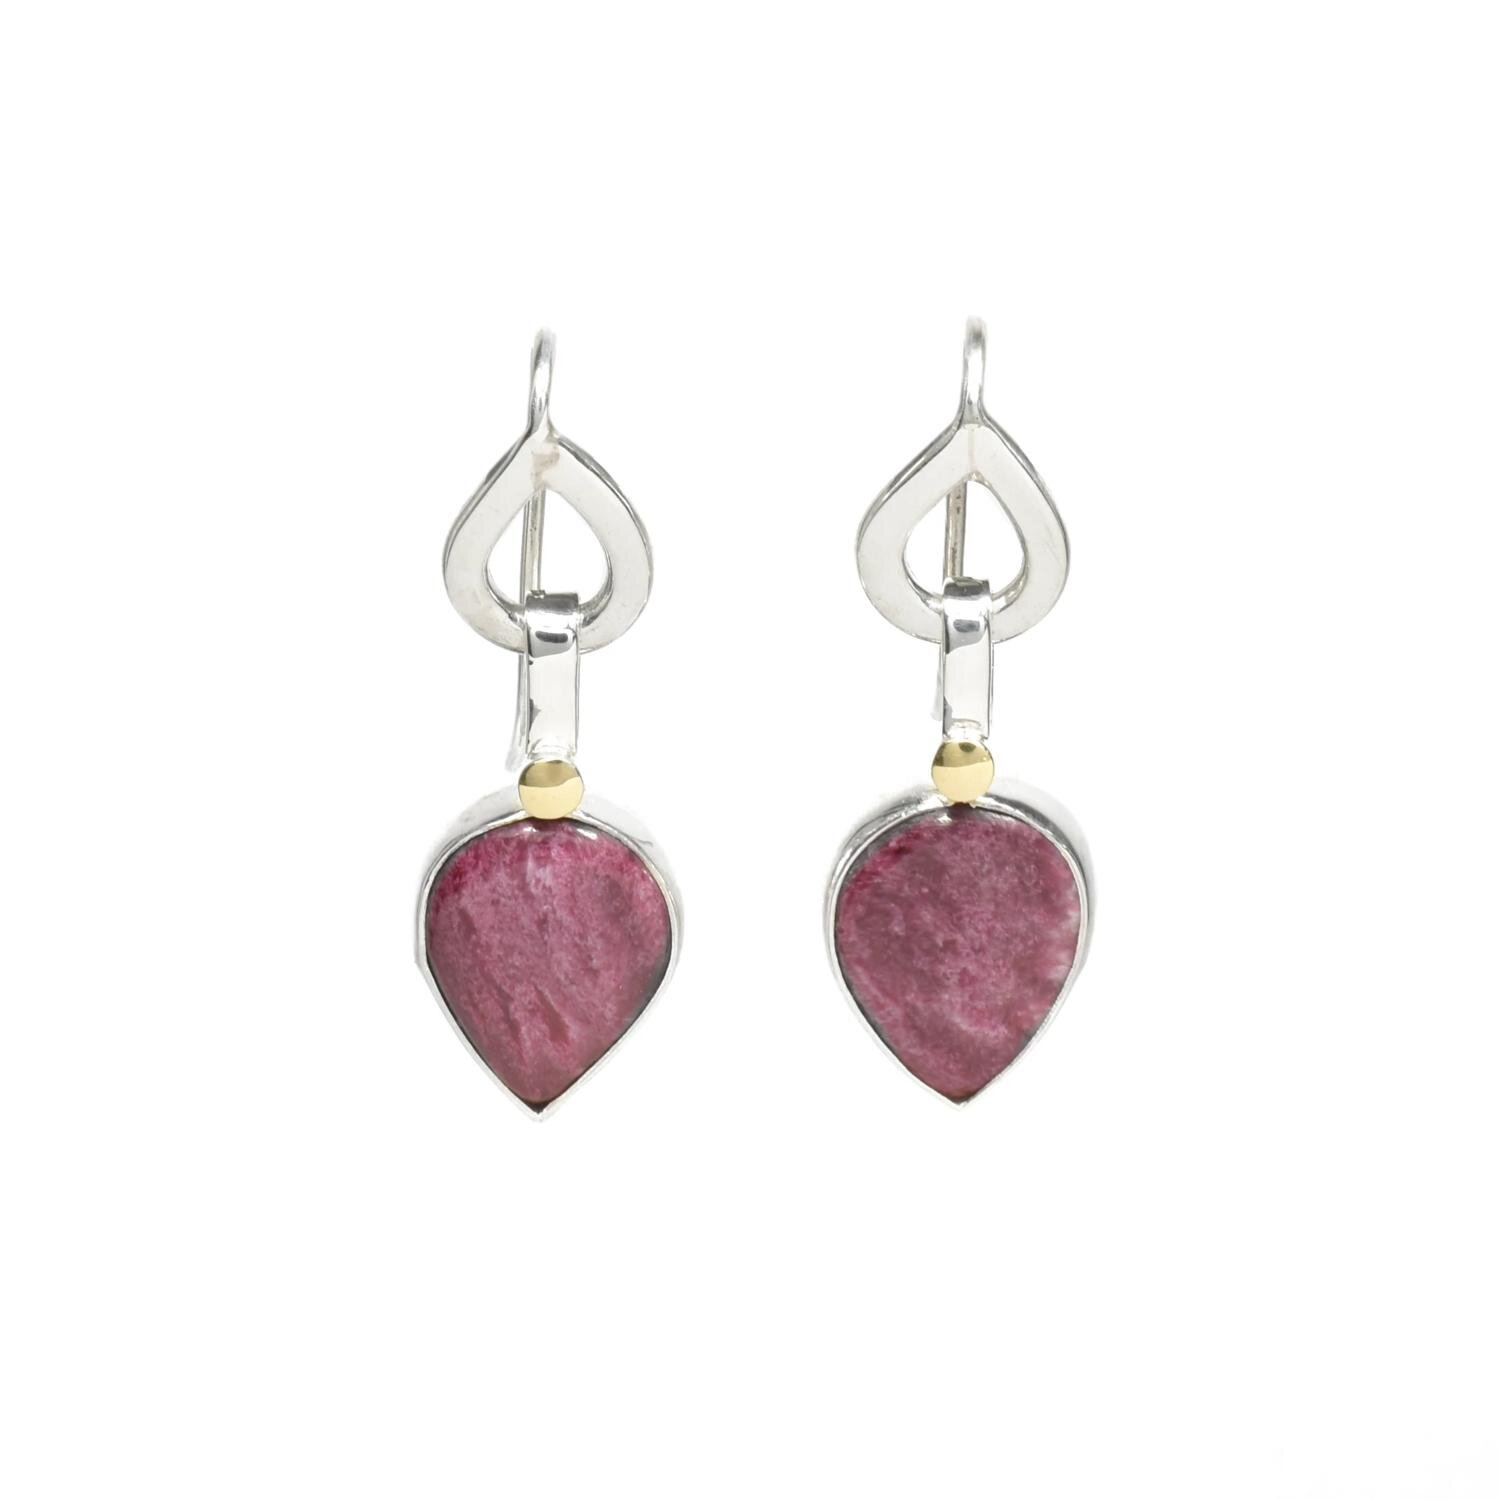 NL-E52 Silver Pear Drop With Putple Spiney Oyster 18KT Earring.jpg